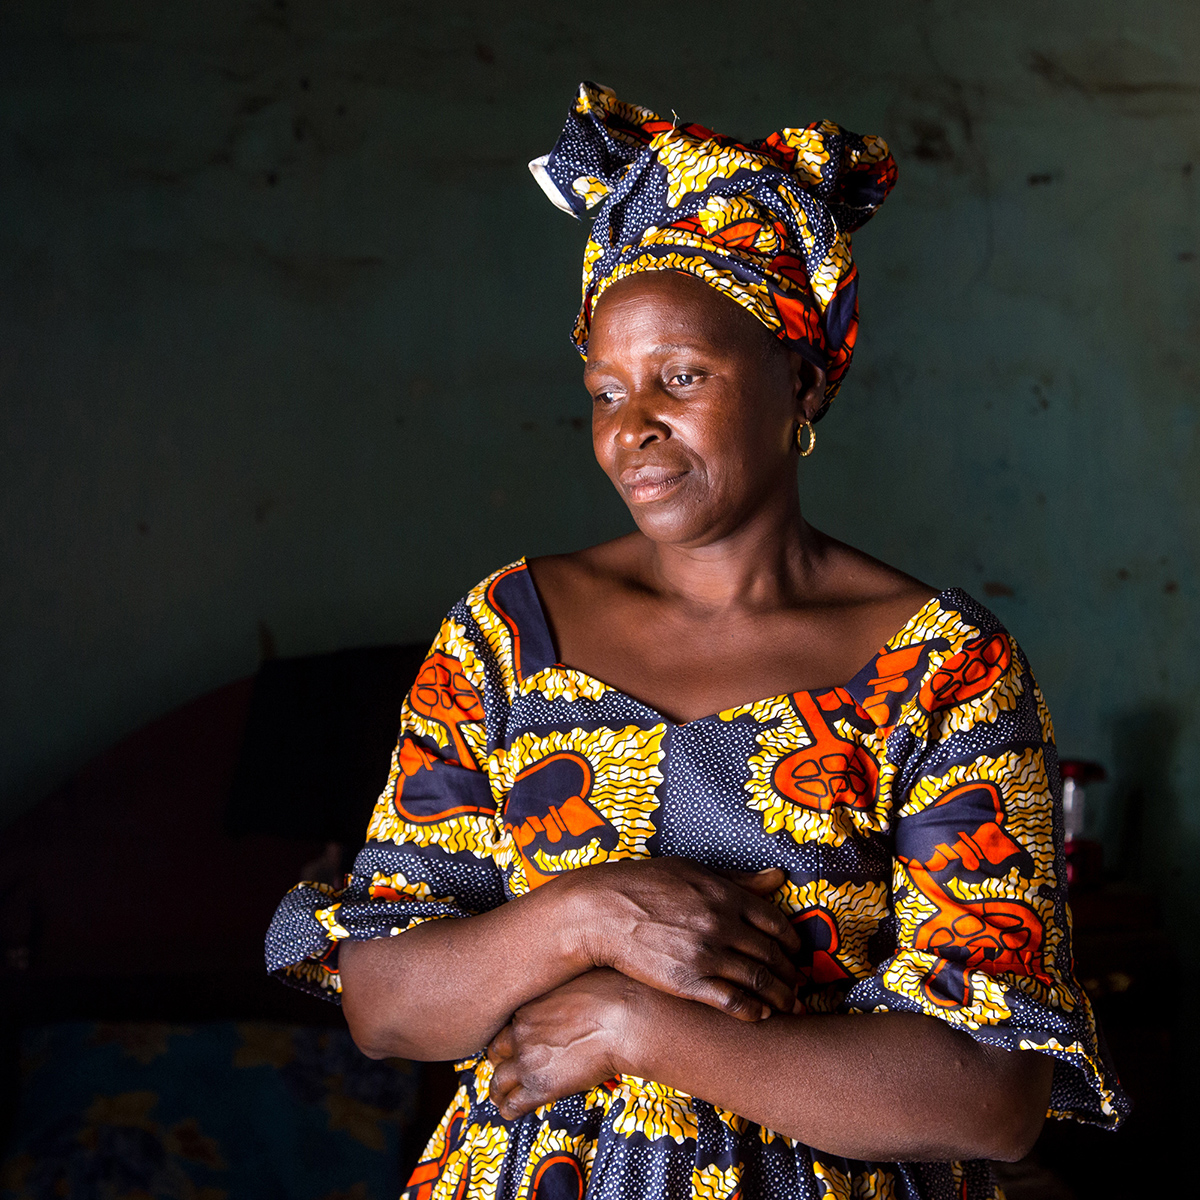 Photograph by Asha Miles, from the series 'Scars', the stories of 12 Gambian women who survived female genital mutilation as children. Pictured here is, Fatou Bojang, 52. © Asha Miles, Russian Federation, Shortlist, Professional, Current Affairs & News (Professional competition), 2018 Sony World Photography Awards.